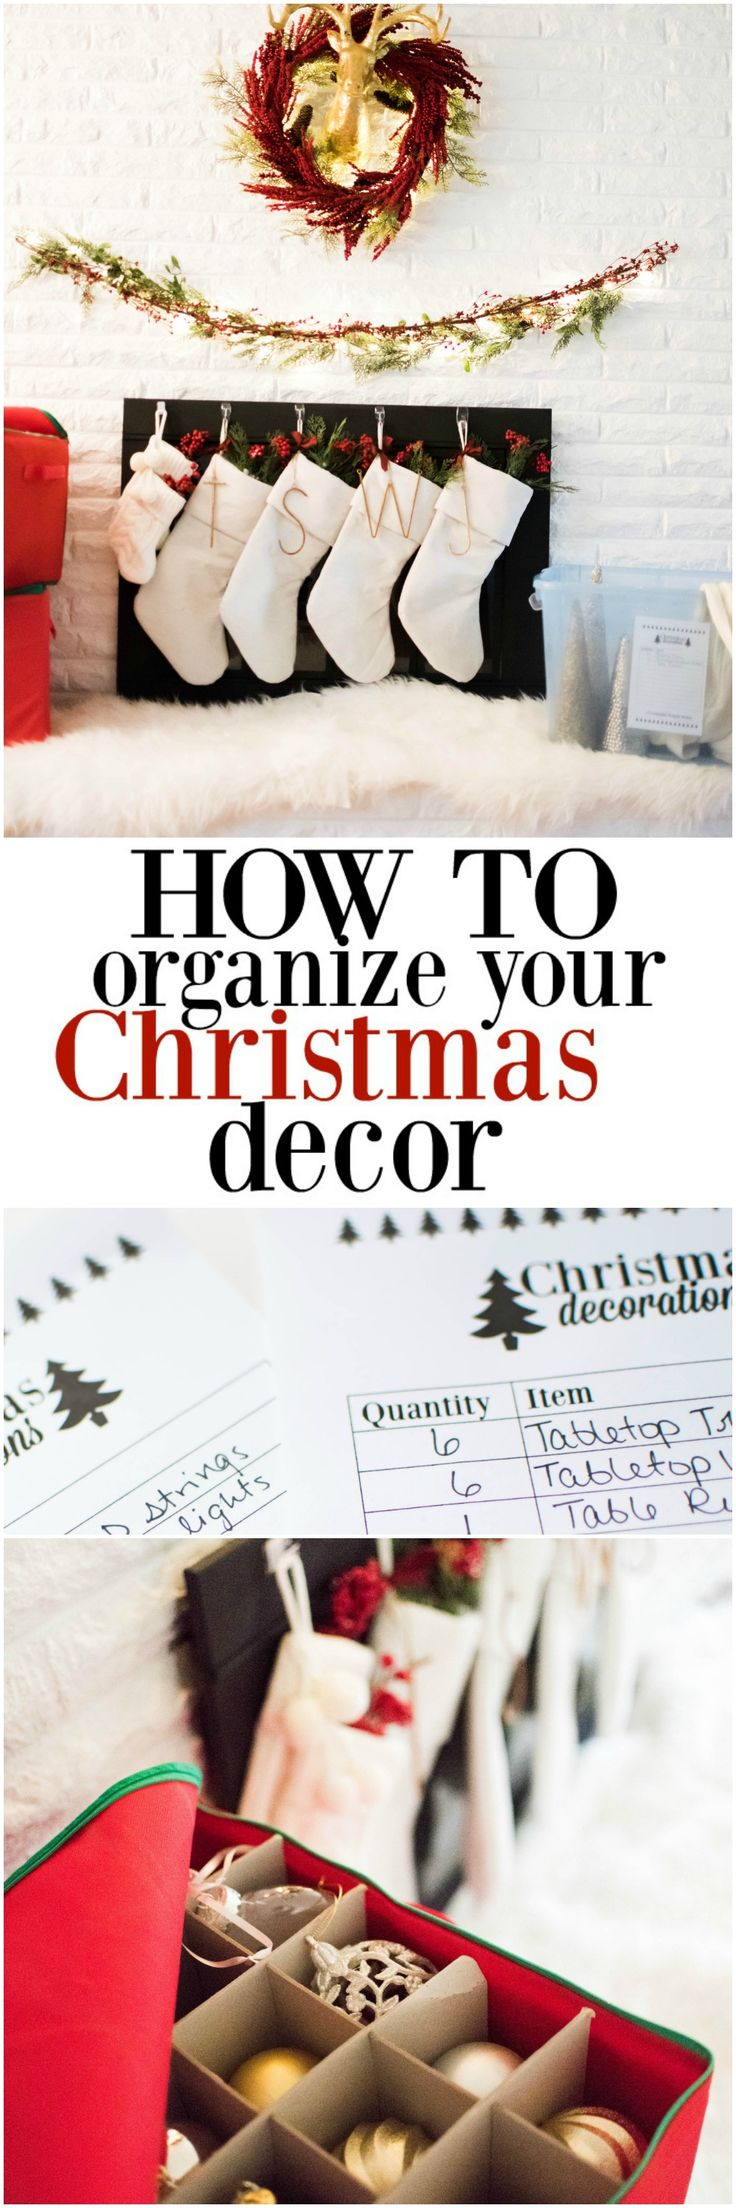 41 best Organize Christmas images on Pinterest | Christmas crafts ...